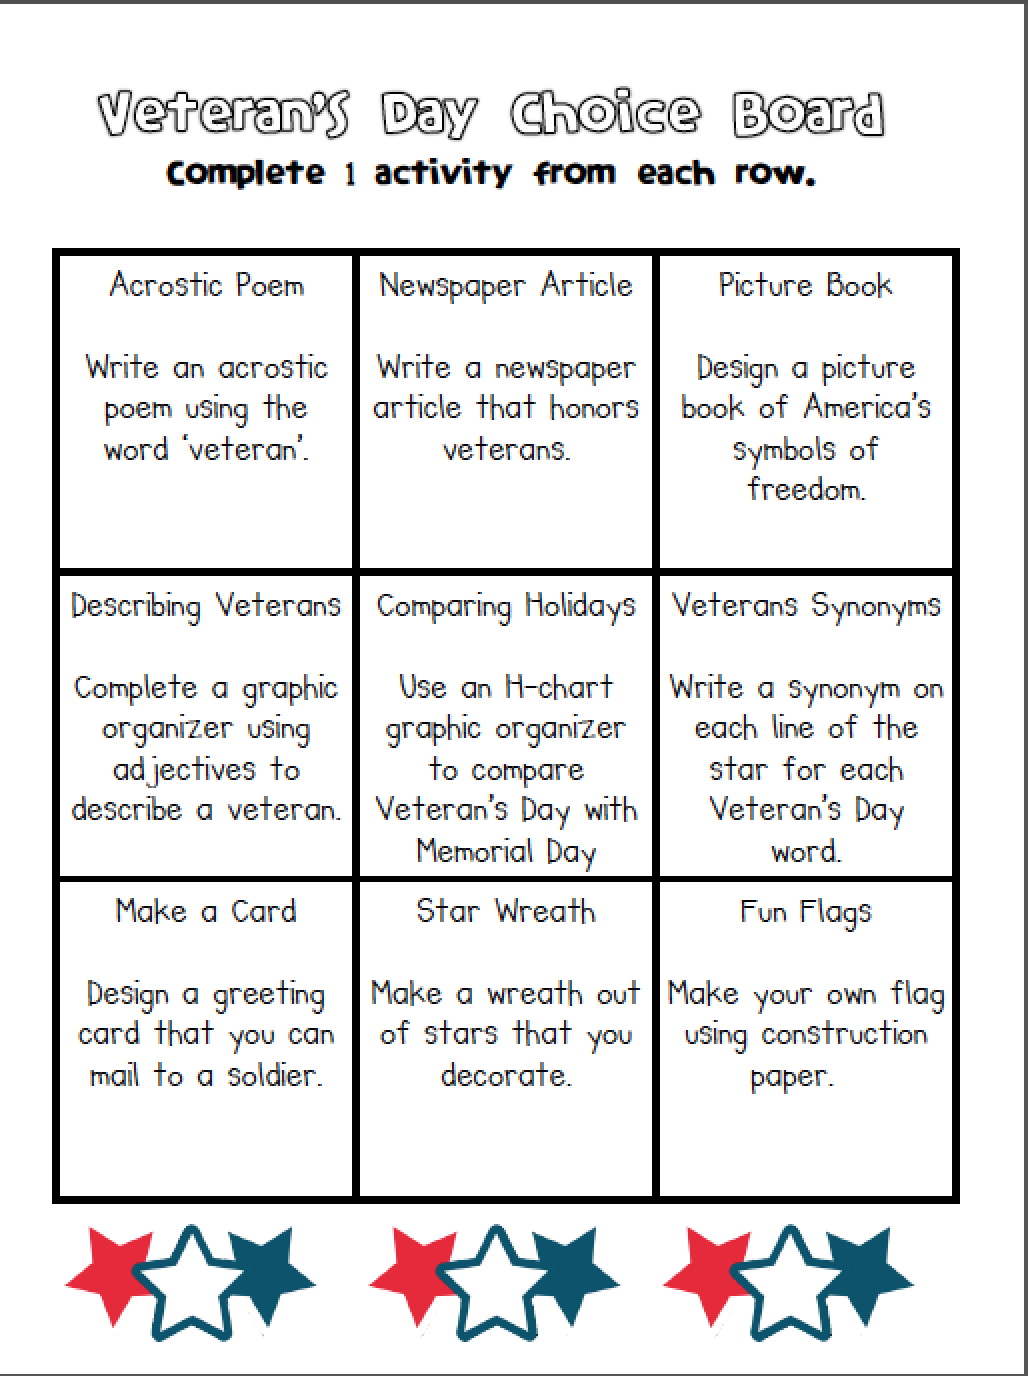 hight resolution of educationjourney: Veteran's Day Choice Board   Veterans day